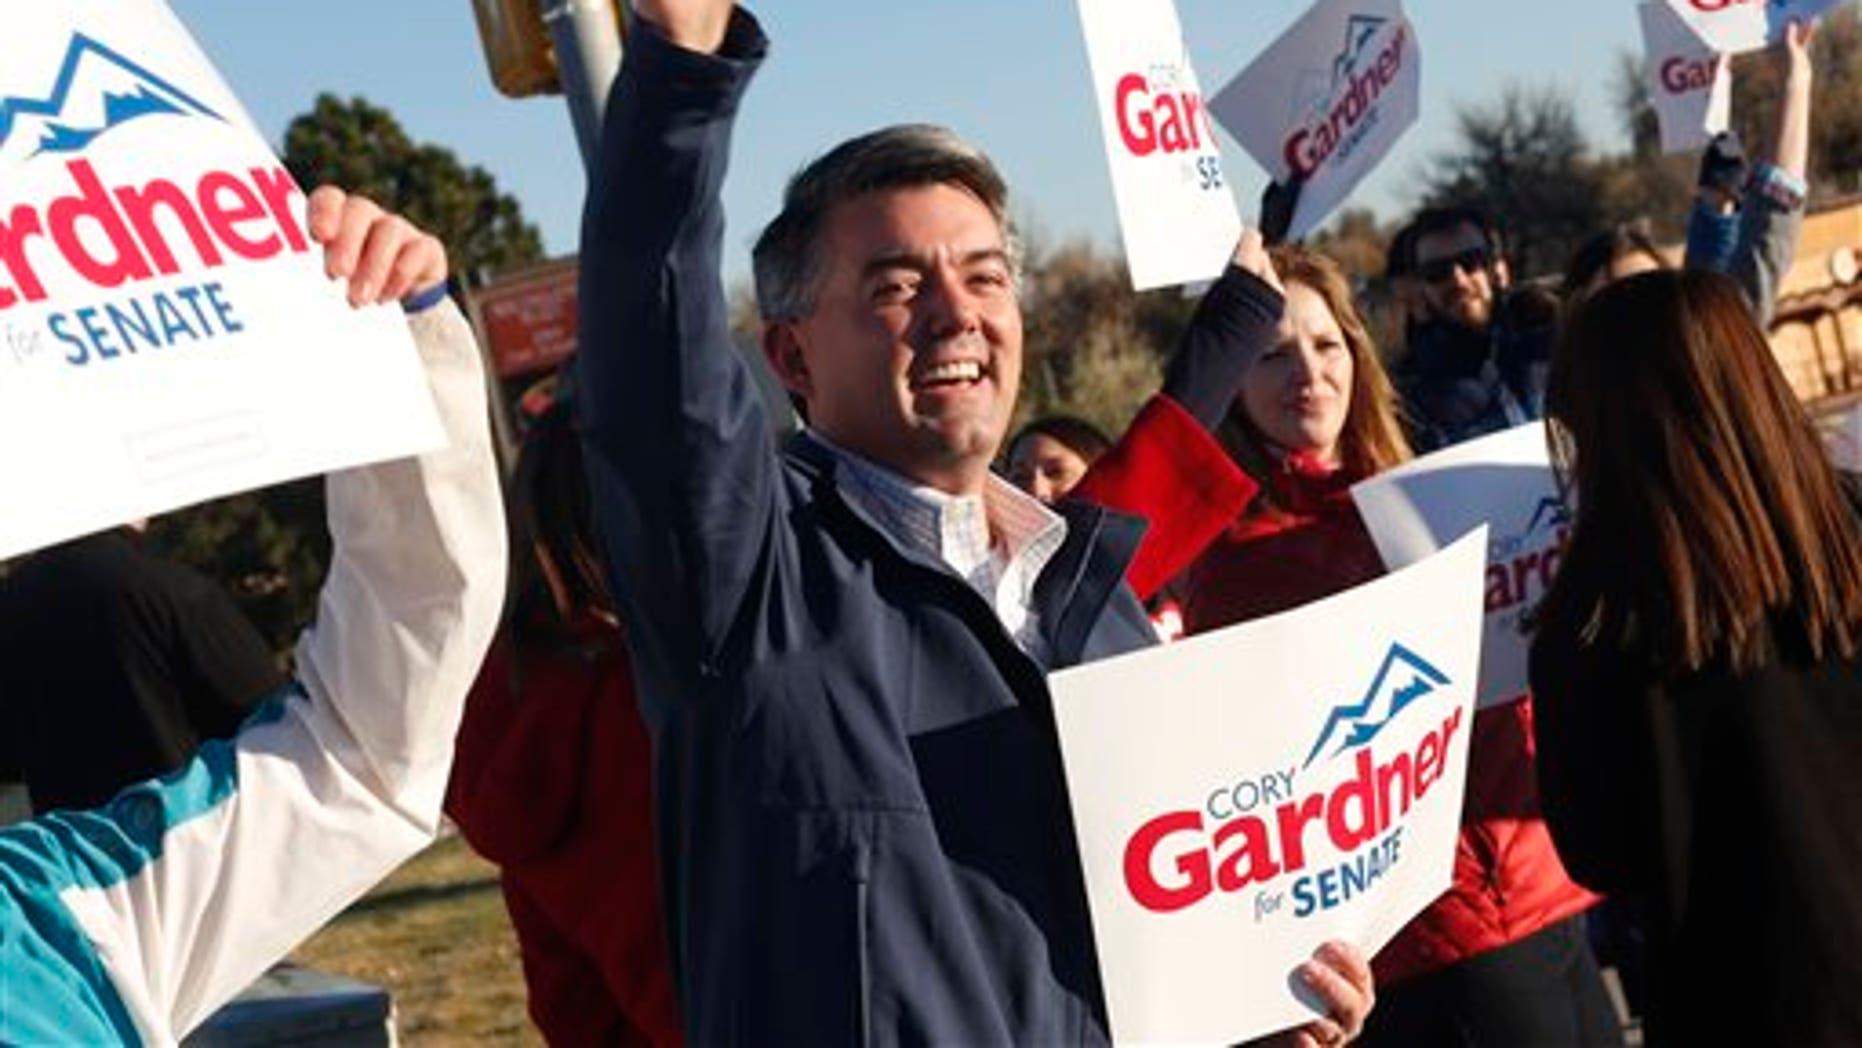 Cory Gardner, Republican candidate for the U.S. Senate seat in Colorado, joins supporters in waving placards on corner of major intersection in south Denver suburb of Centennial, Colo., early on Tuesday, Nov. 4, 2014. Gardner is facing Democratic incumbent U.S. Sen. Mark Udall in a pitched battle for the seat. (AP Photo/David Zalubowski)